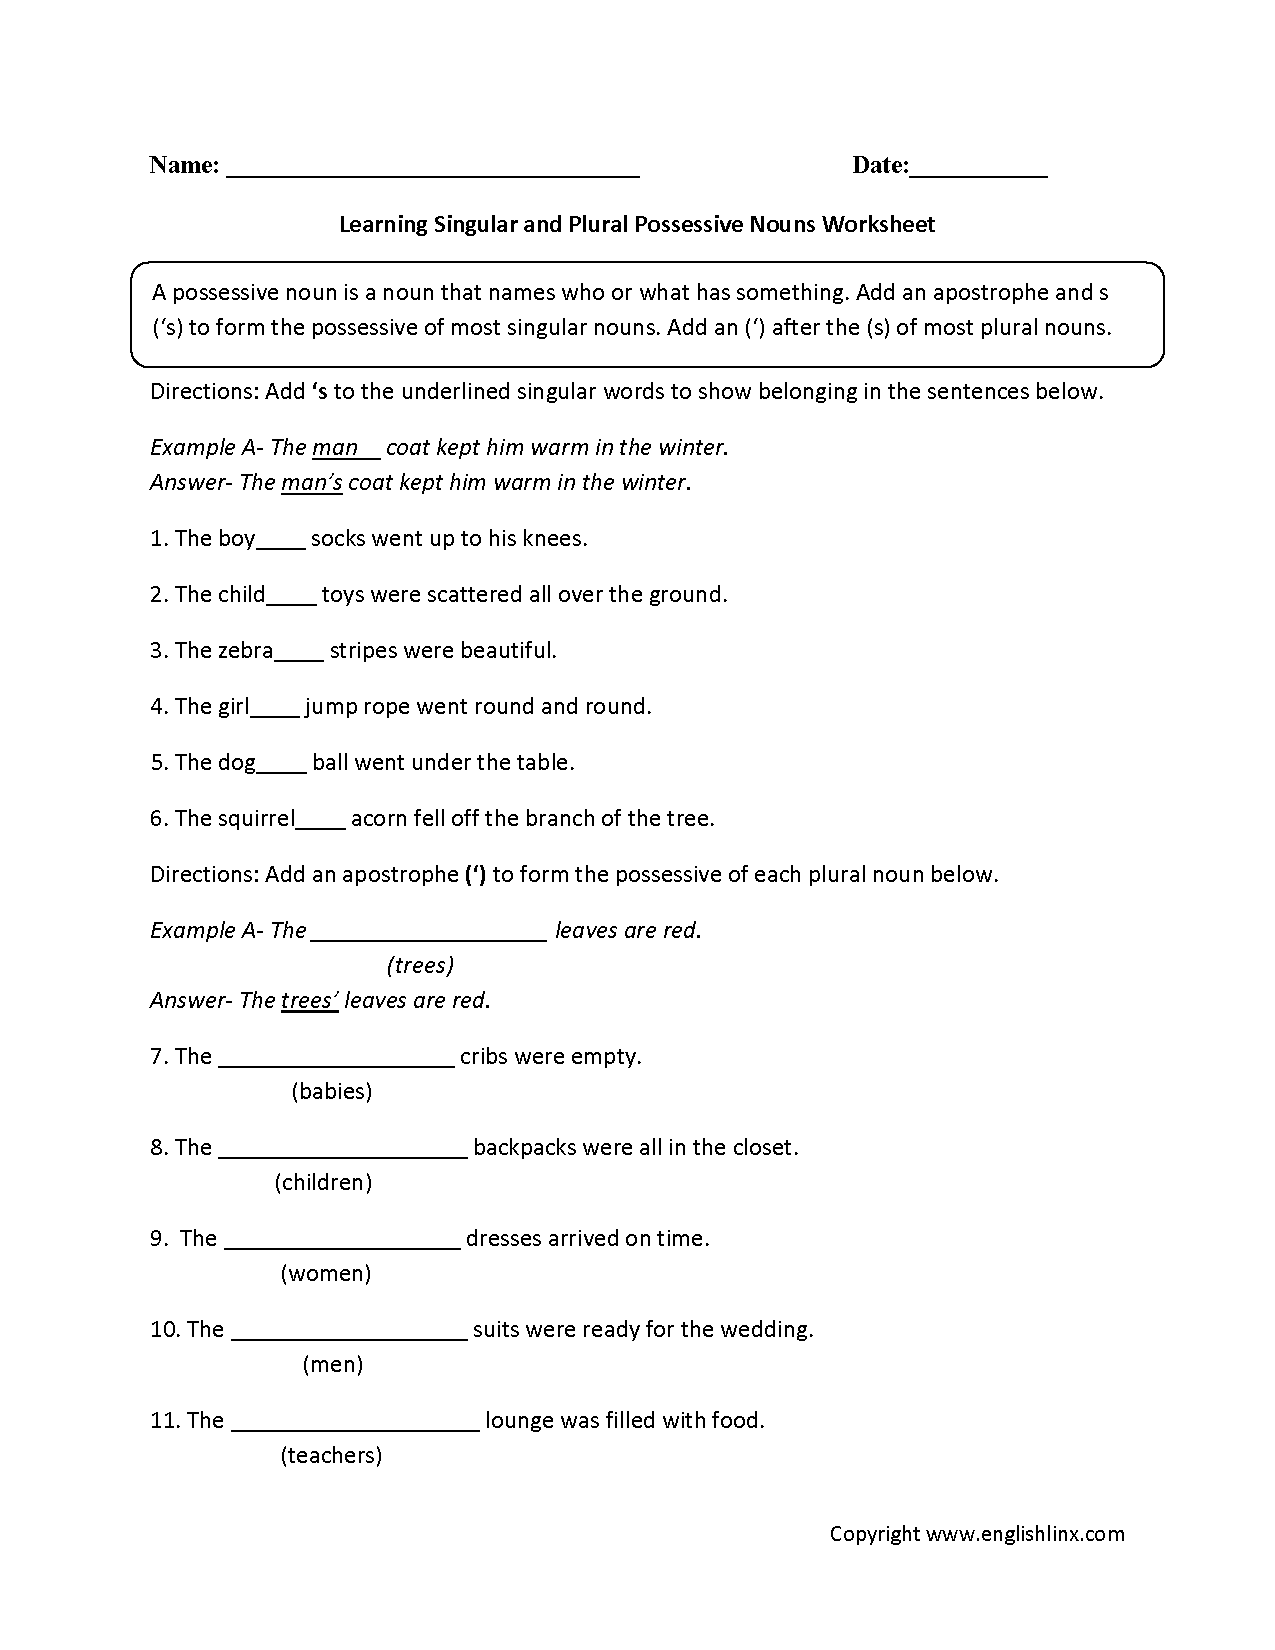 worksheet Plural Possessive Nouns Worksheet nouns worksheets possessive grades 9 12 worksheets